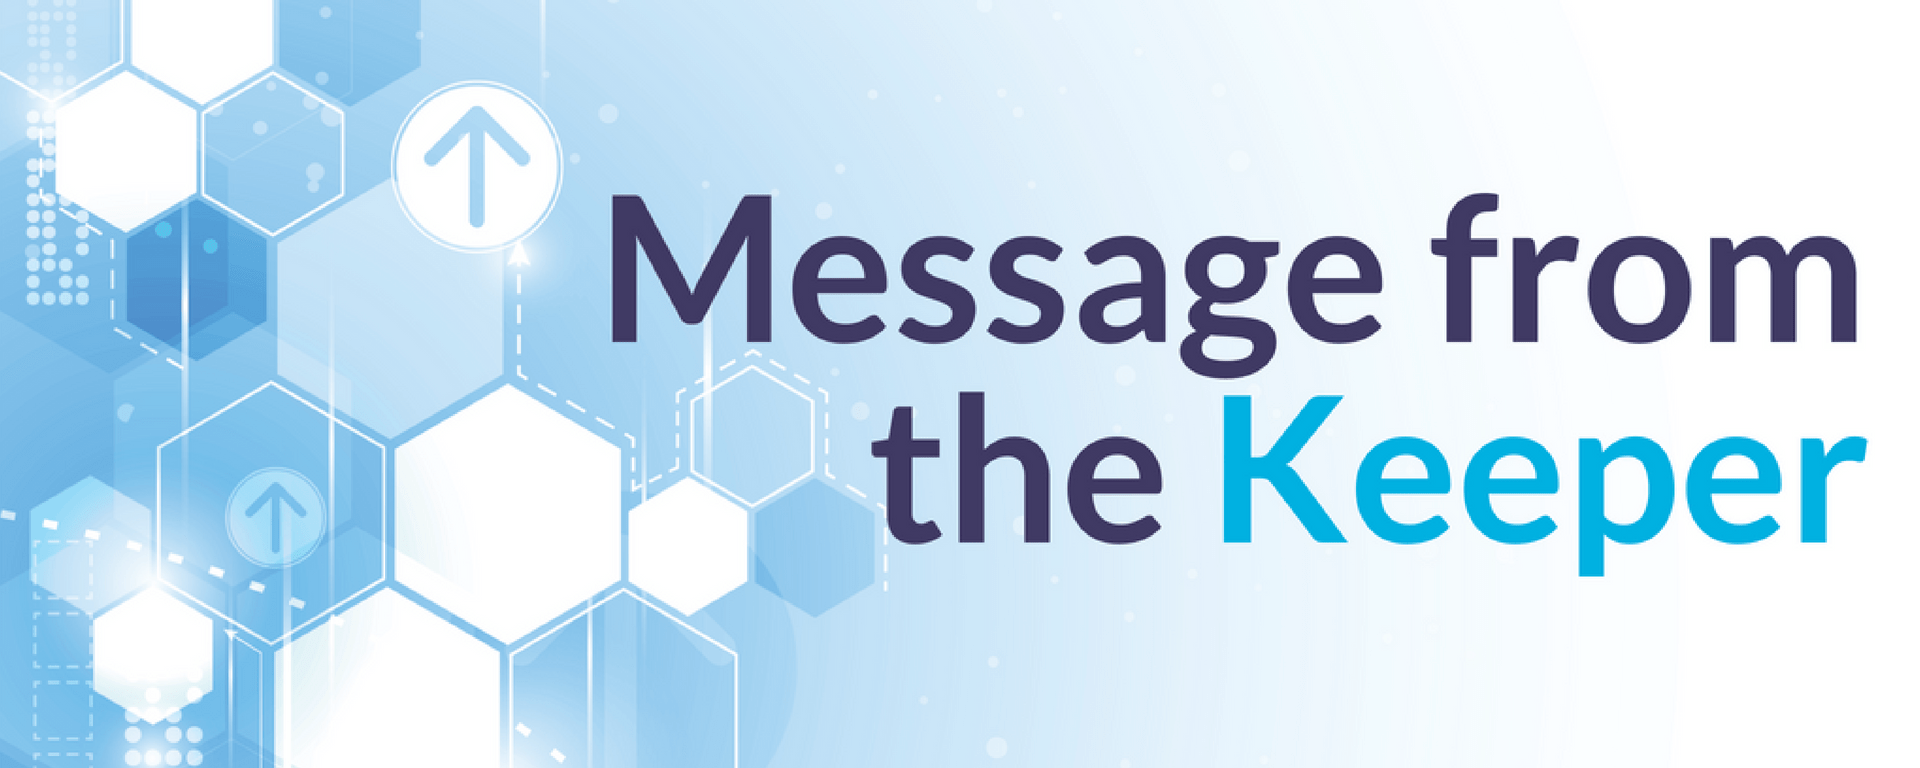 fibre optic blue banner with text reading 'Message from the Keeper'